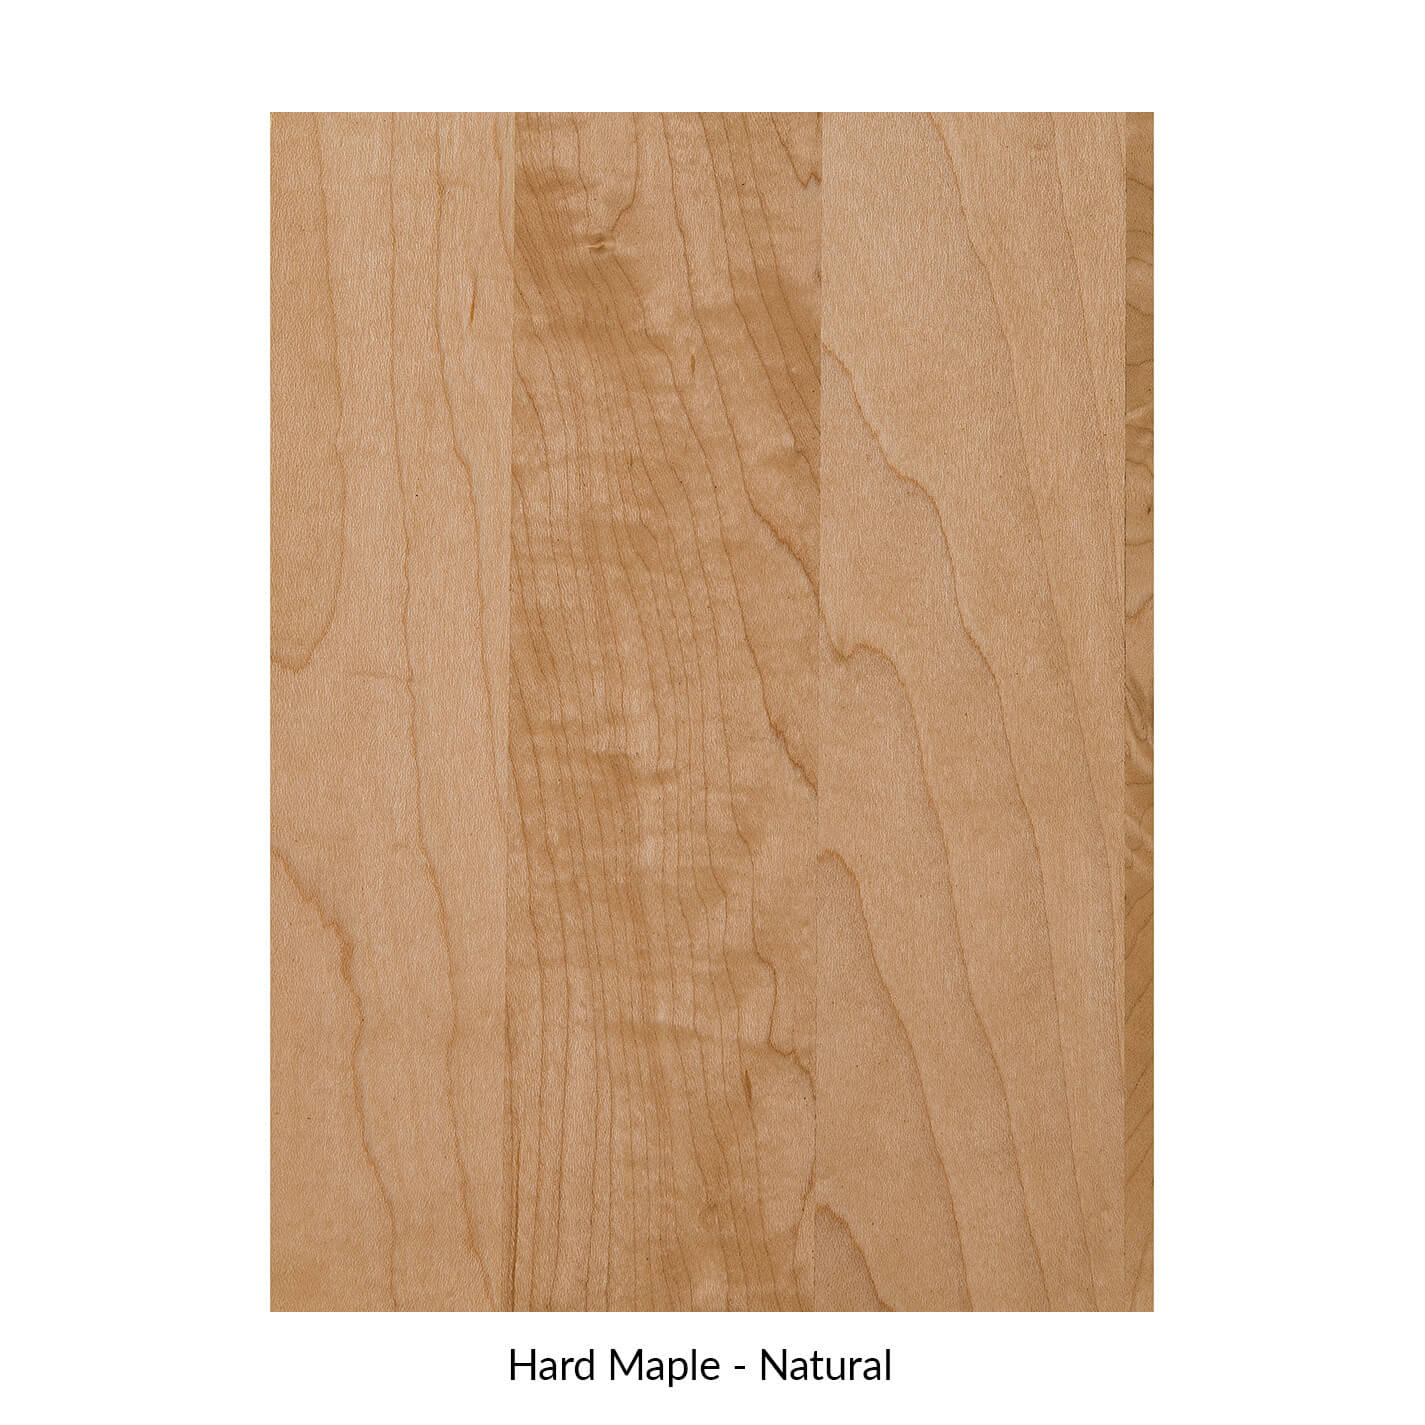 spectrum-hard-maple-natural.jpg